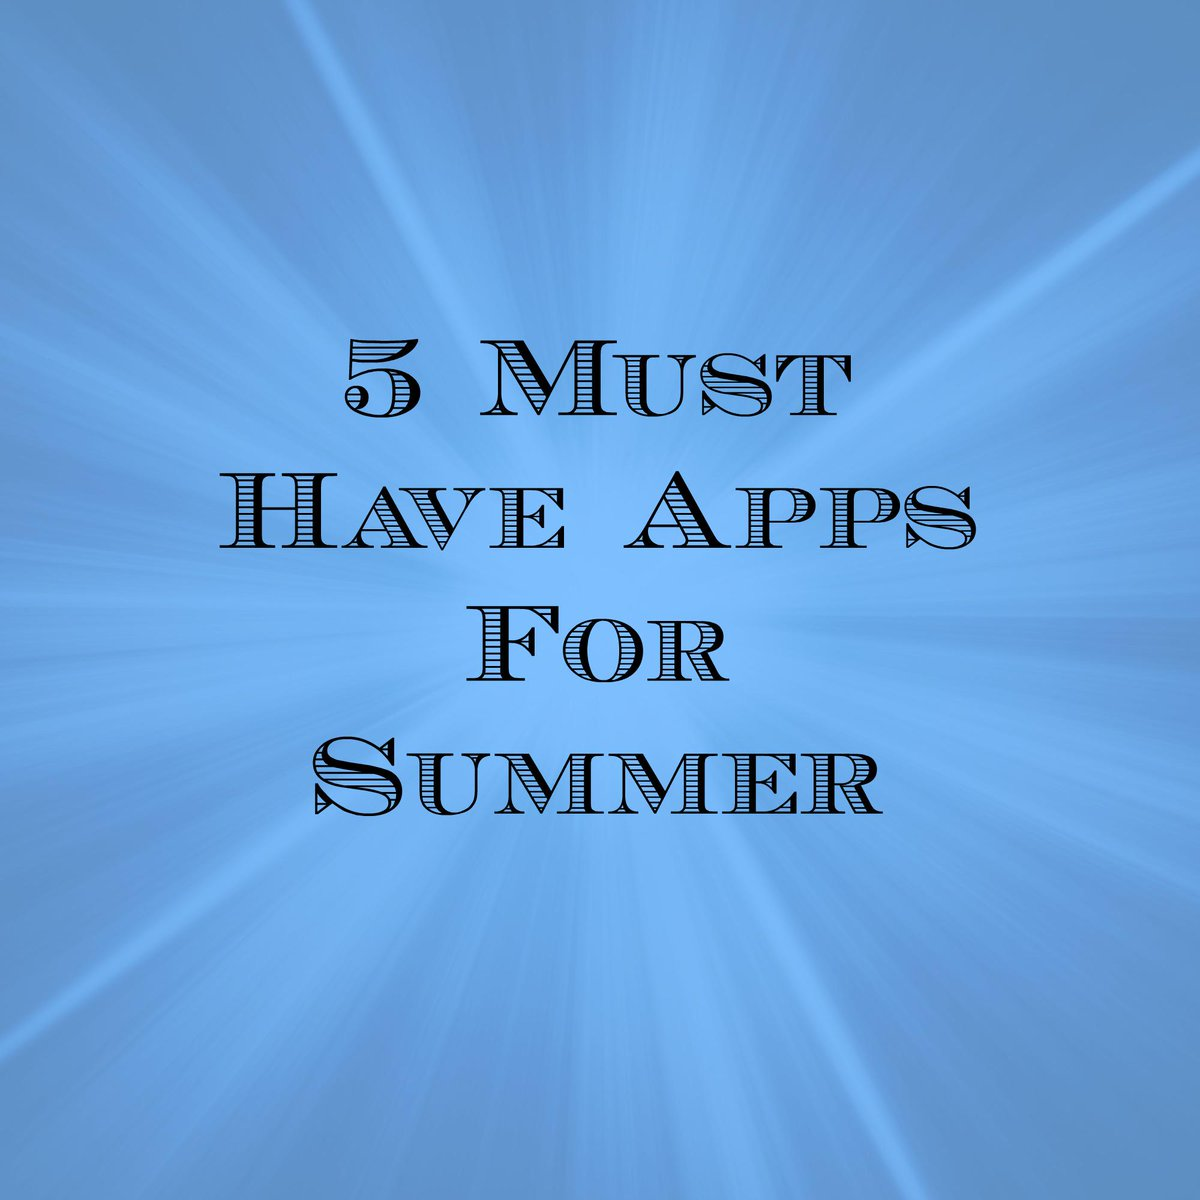 5 Must Have Apps to Keep you Going this Summer: #ad http://t.co/zMiPrCBiKg http://t.co/6GjnvxWLnD